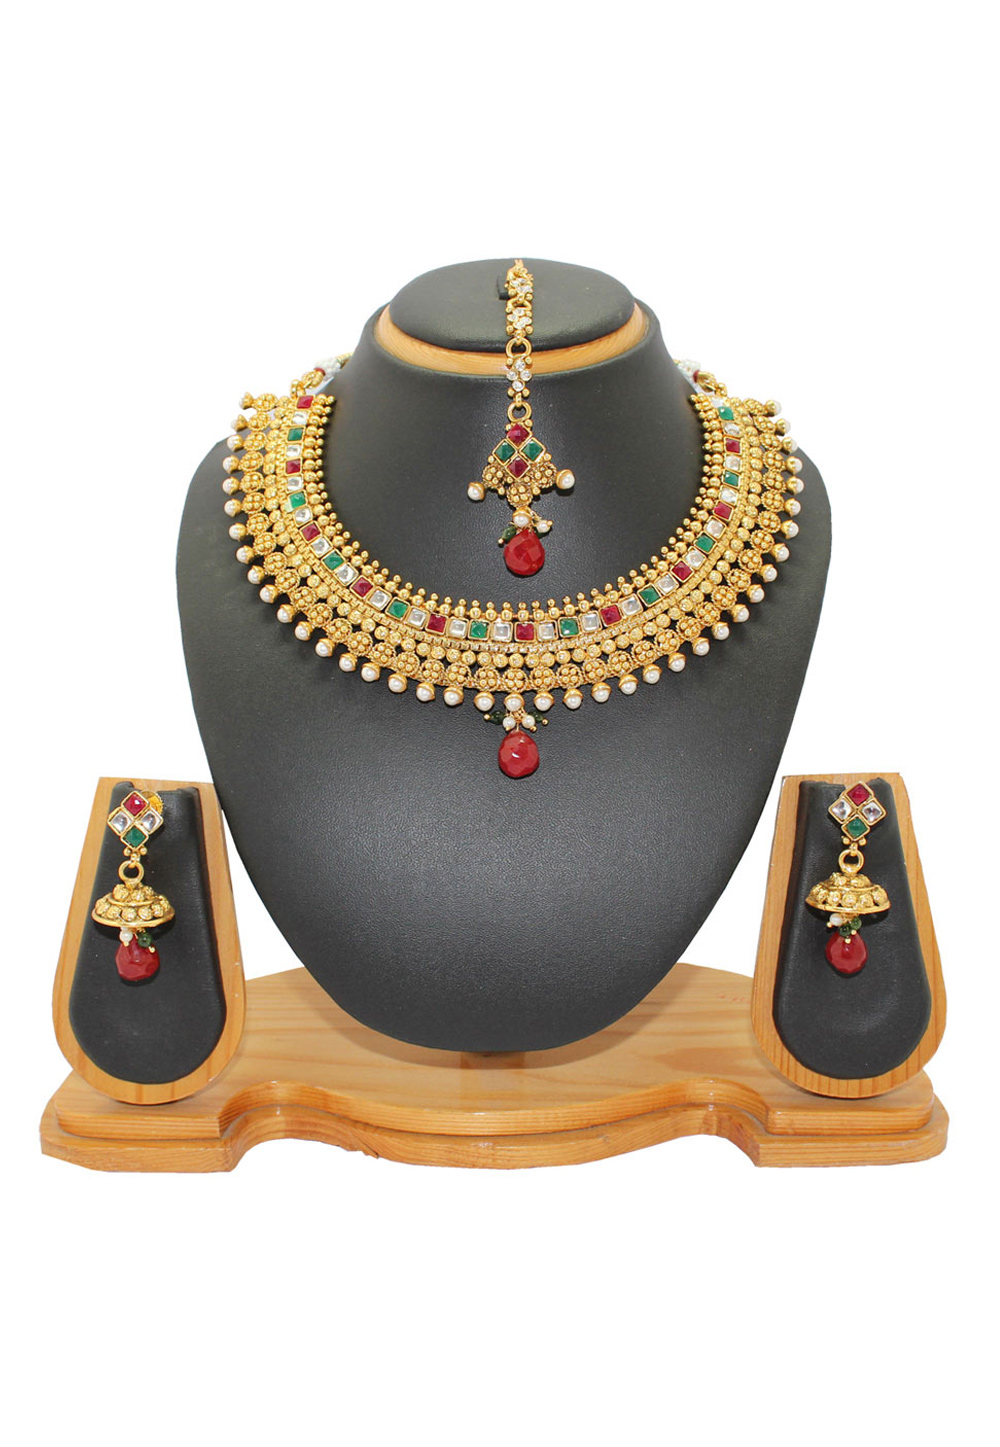 Maroon Copper Imitation Pears Necklace With Earrings and Maang Tikka 64330